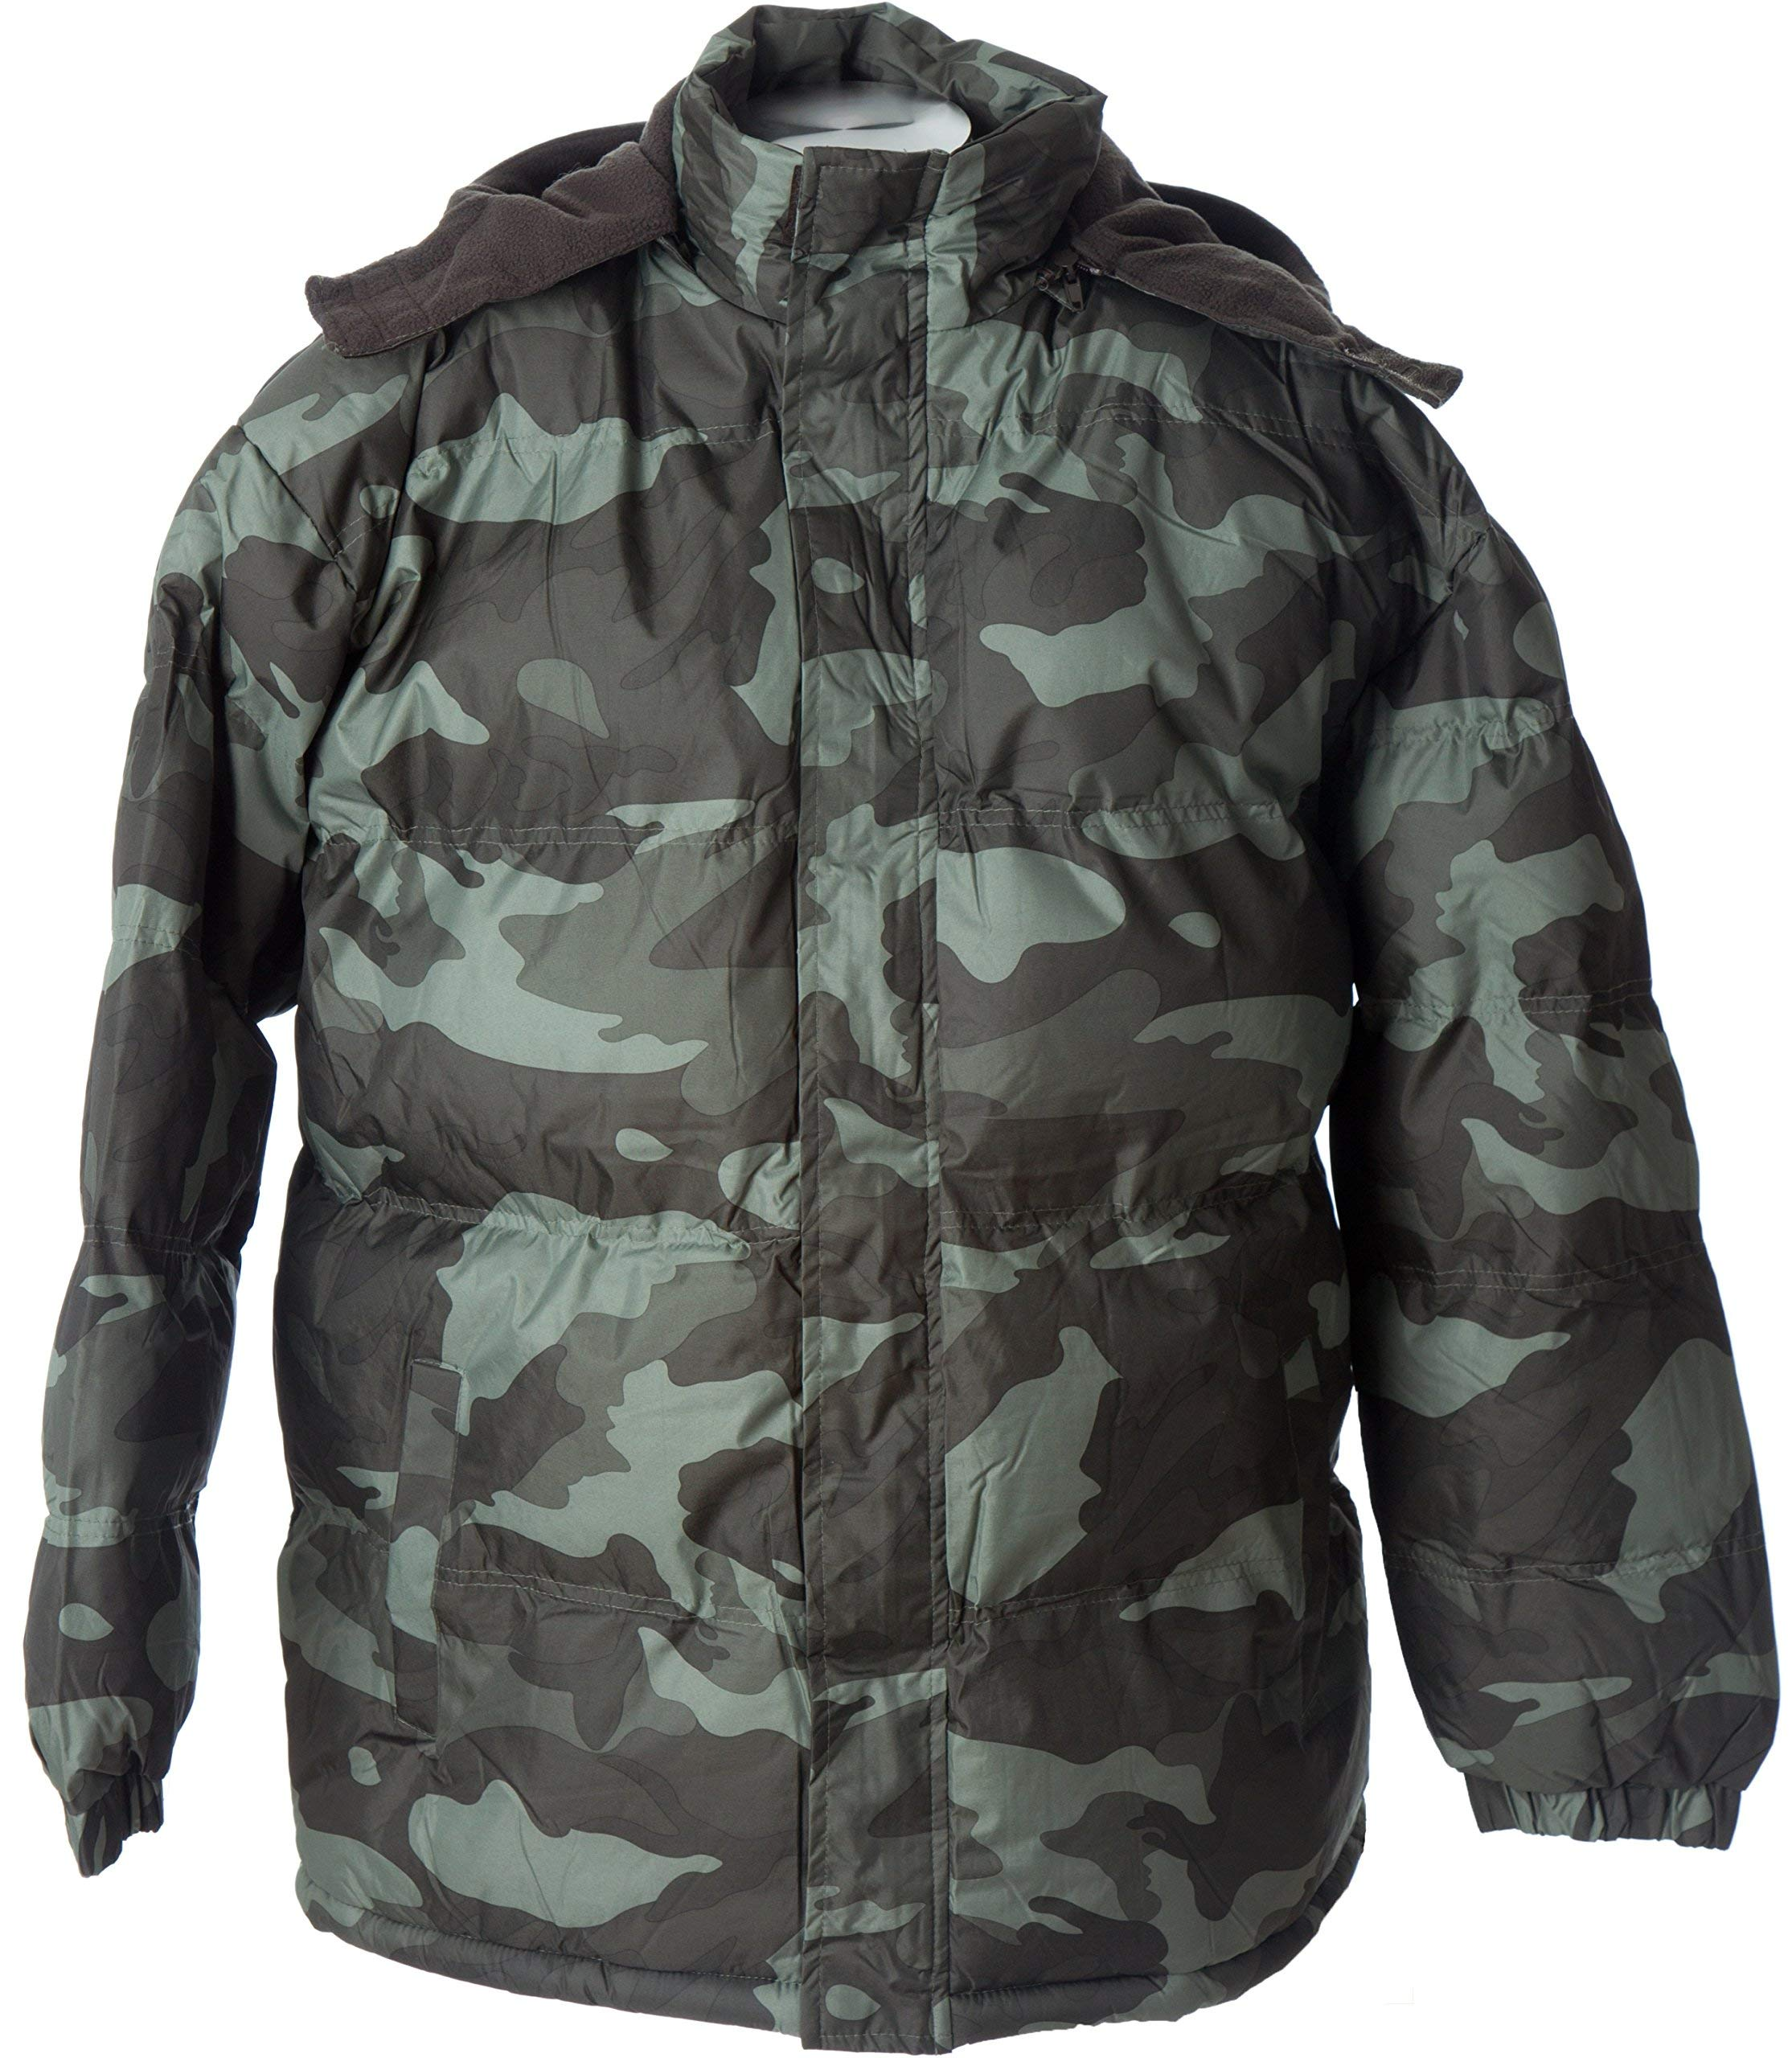 Lion Force Mens' Warm Camouflage Hooded Hunting Jacket Puffer Winter Coat